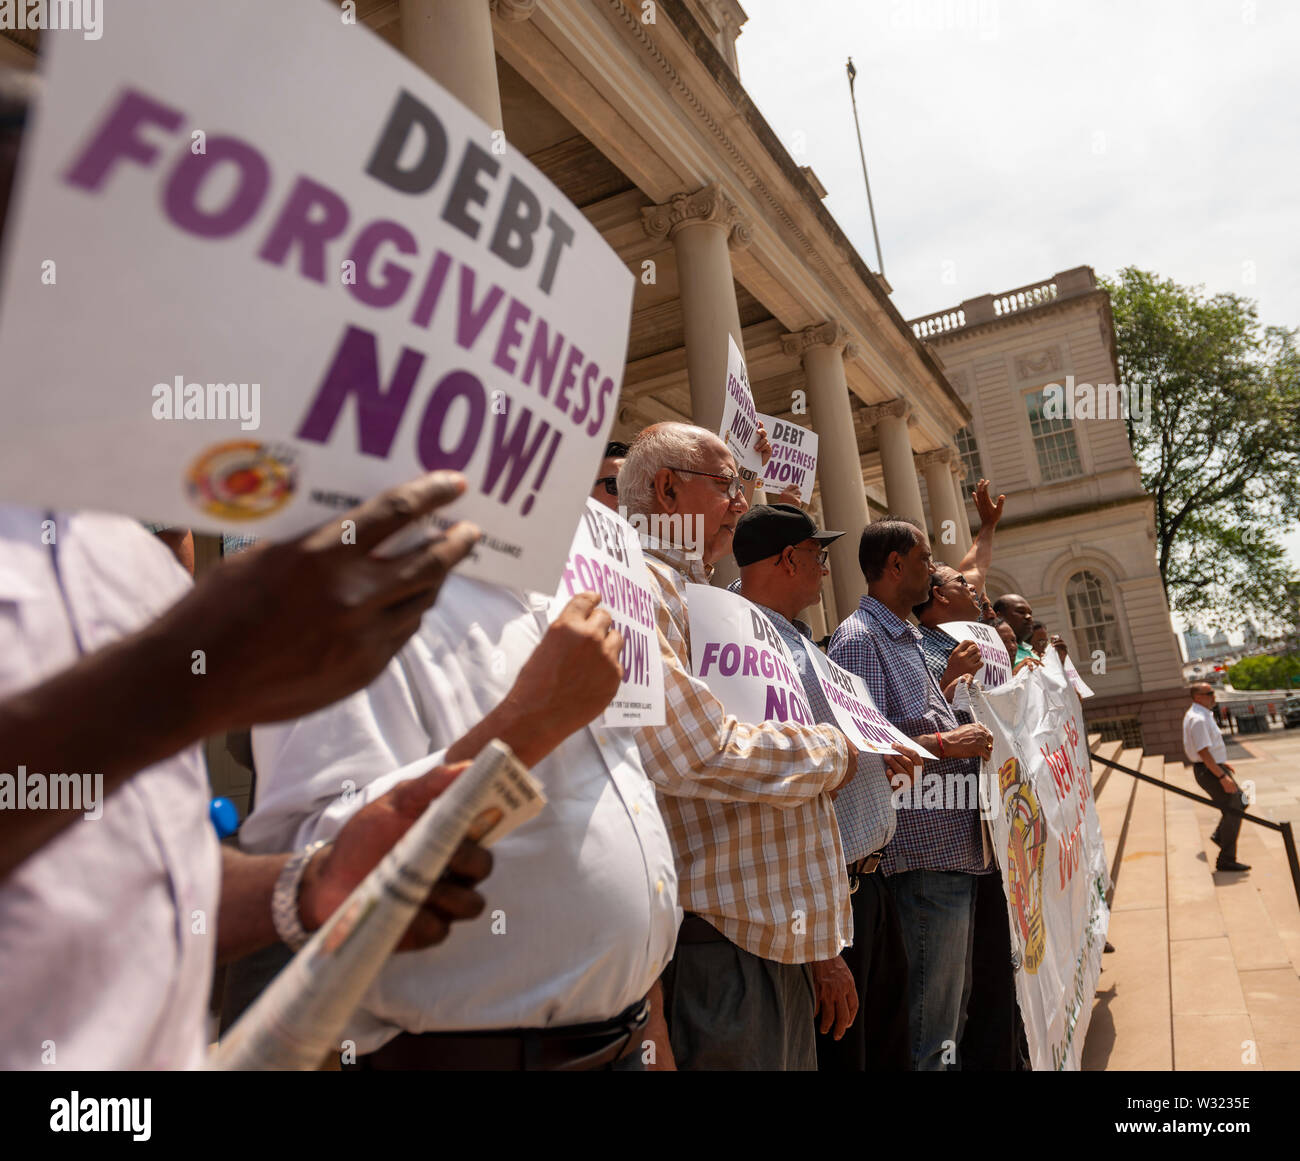 New York taxi drivers and their supporters rally on the steps of NY City Hall in Thursday, July 11, 2019 for a news conference calling for debt forgiveness for their medallion loans. Medallion brokers allegedly took advantage of drivers who bought medallions at artificially inflated prices and ended up burdened with debt. A number of drivers have filed for bankruptcy or are considering it and there have been a few suicides amongst stressed drivers. (© Richard B. Levine) - Stock Image